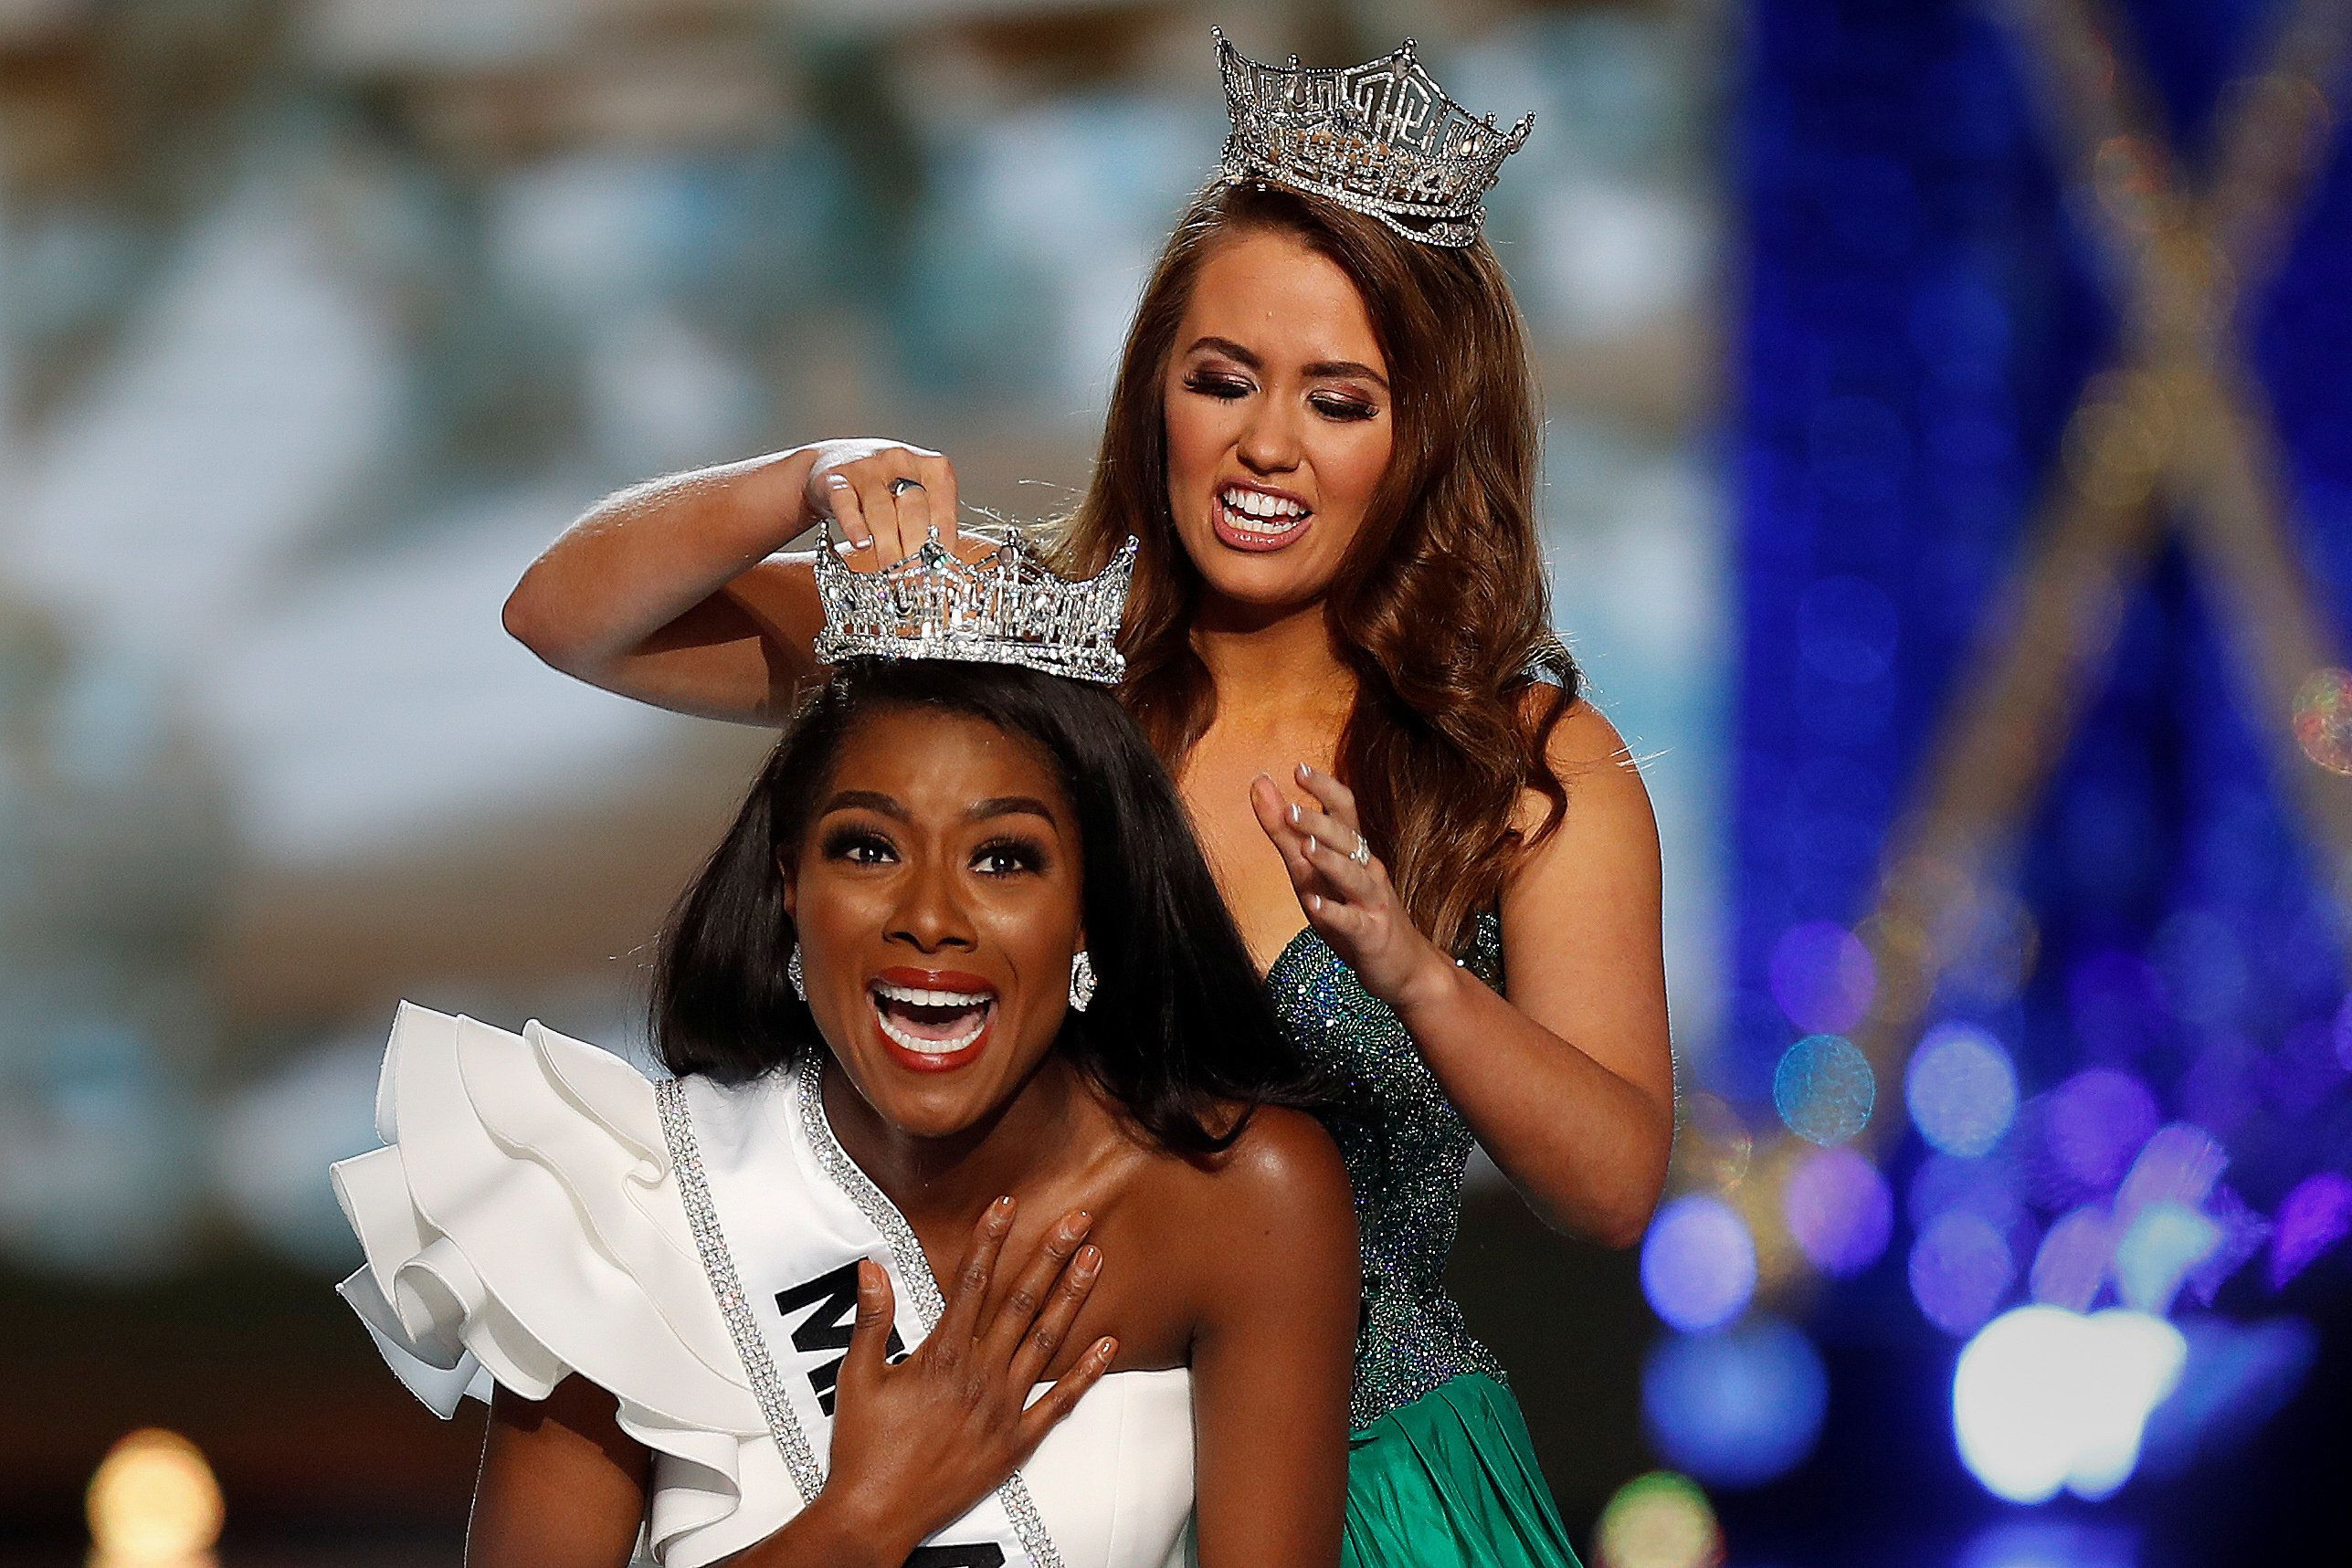 Miss New York Nia Imani Franklin has the tiara put on her by outgoing Miss America Cara Mund on stage in Atlantic City, New Jersey, U.S., September 9, 2018. REUTERS/Carlo Allegri      TPX IMAGES OF THE DAY